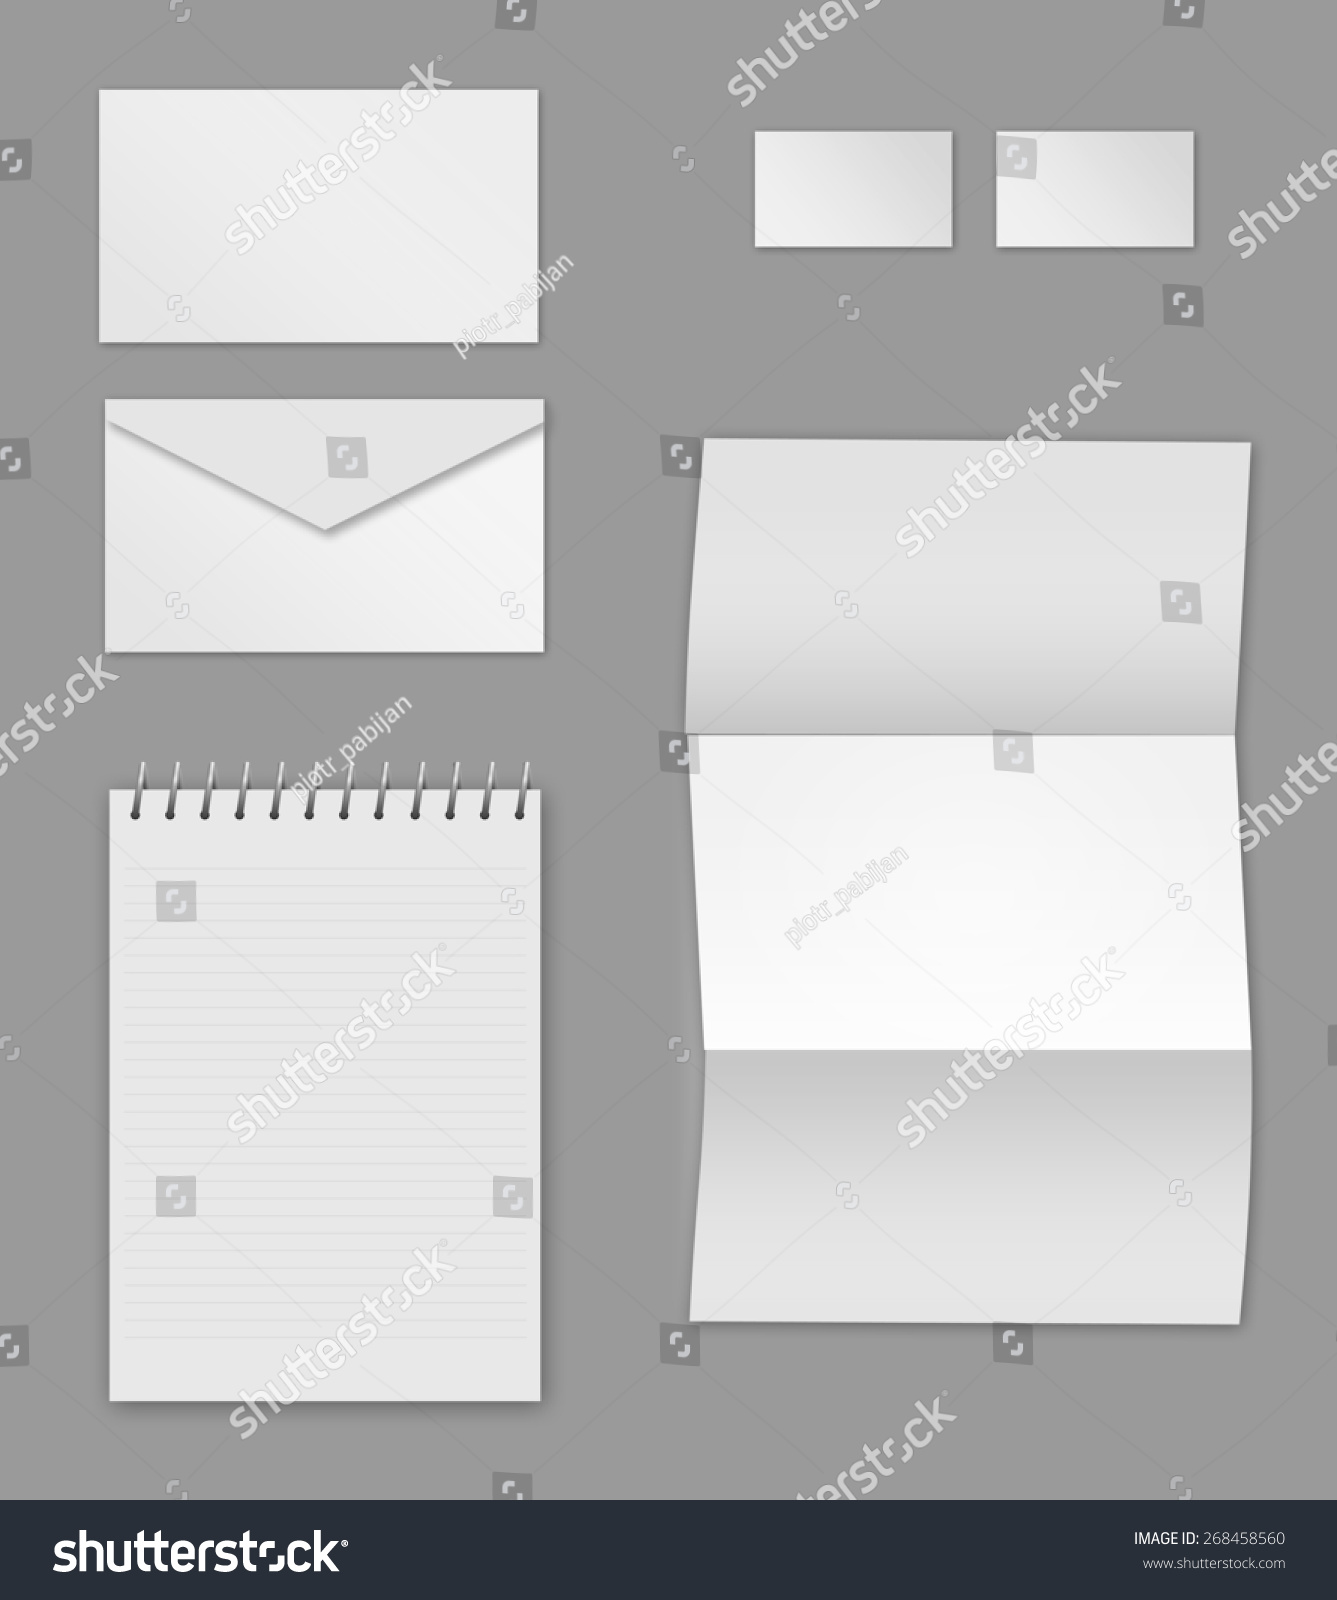 Corporate Identity Stationery Templates Incl Business Stock ...